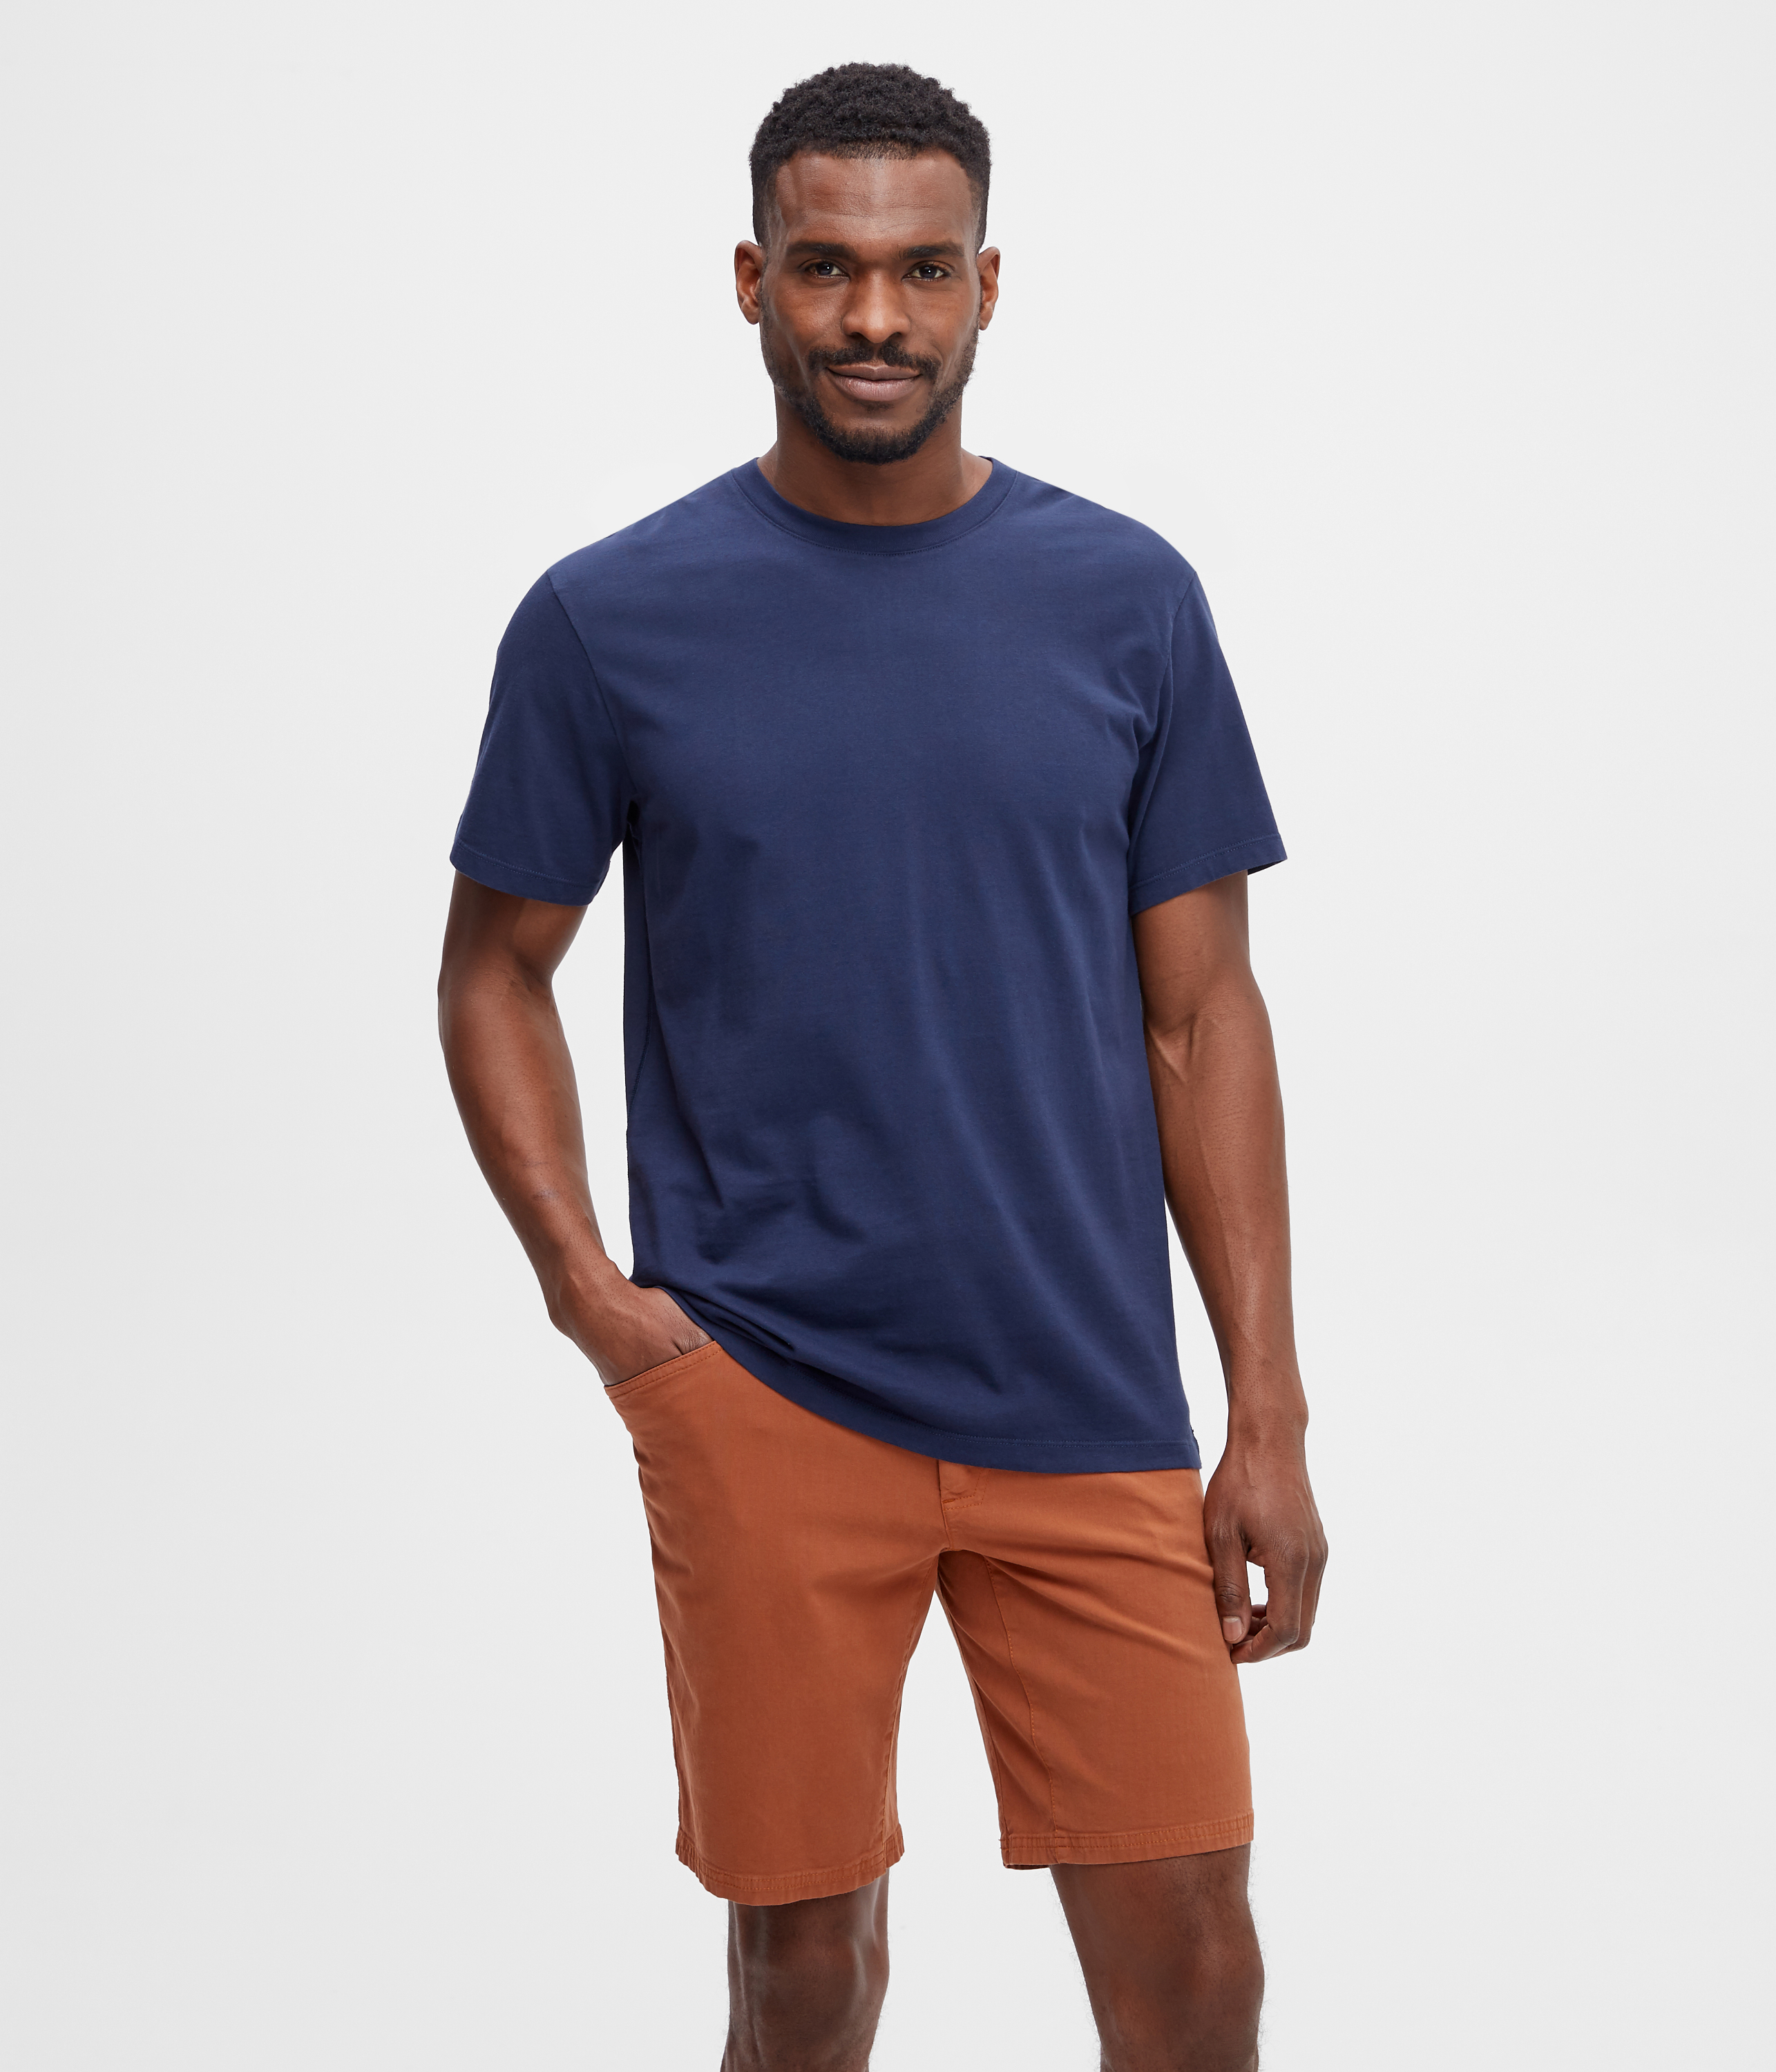 b388d6bc235 Shirts and tops | MEC